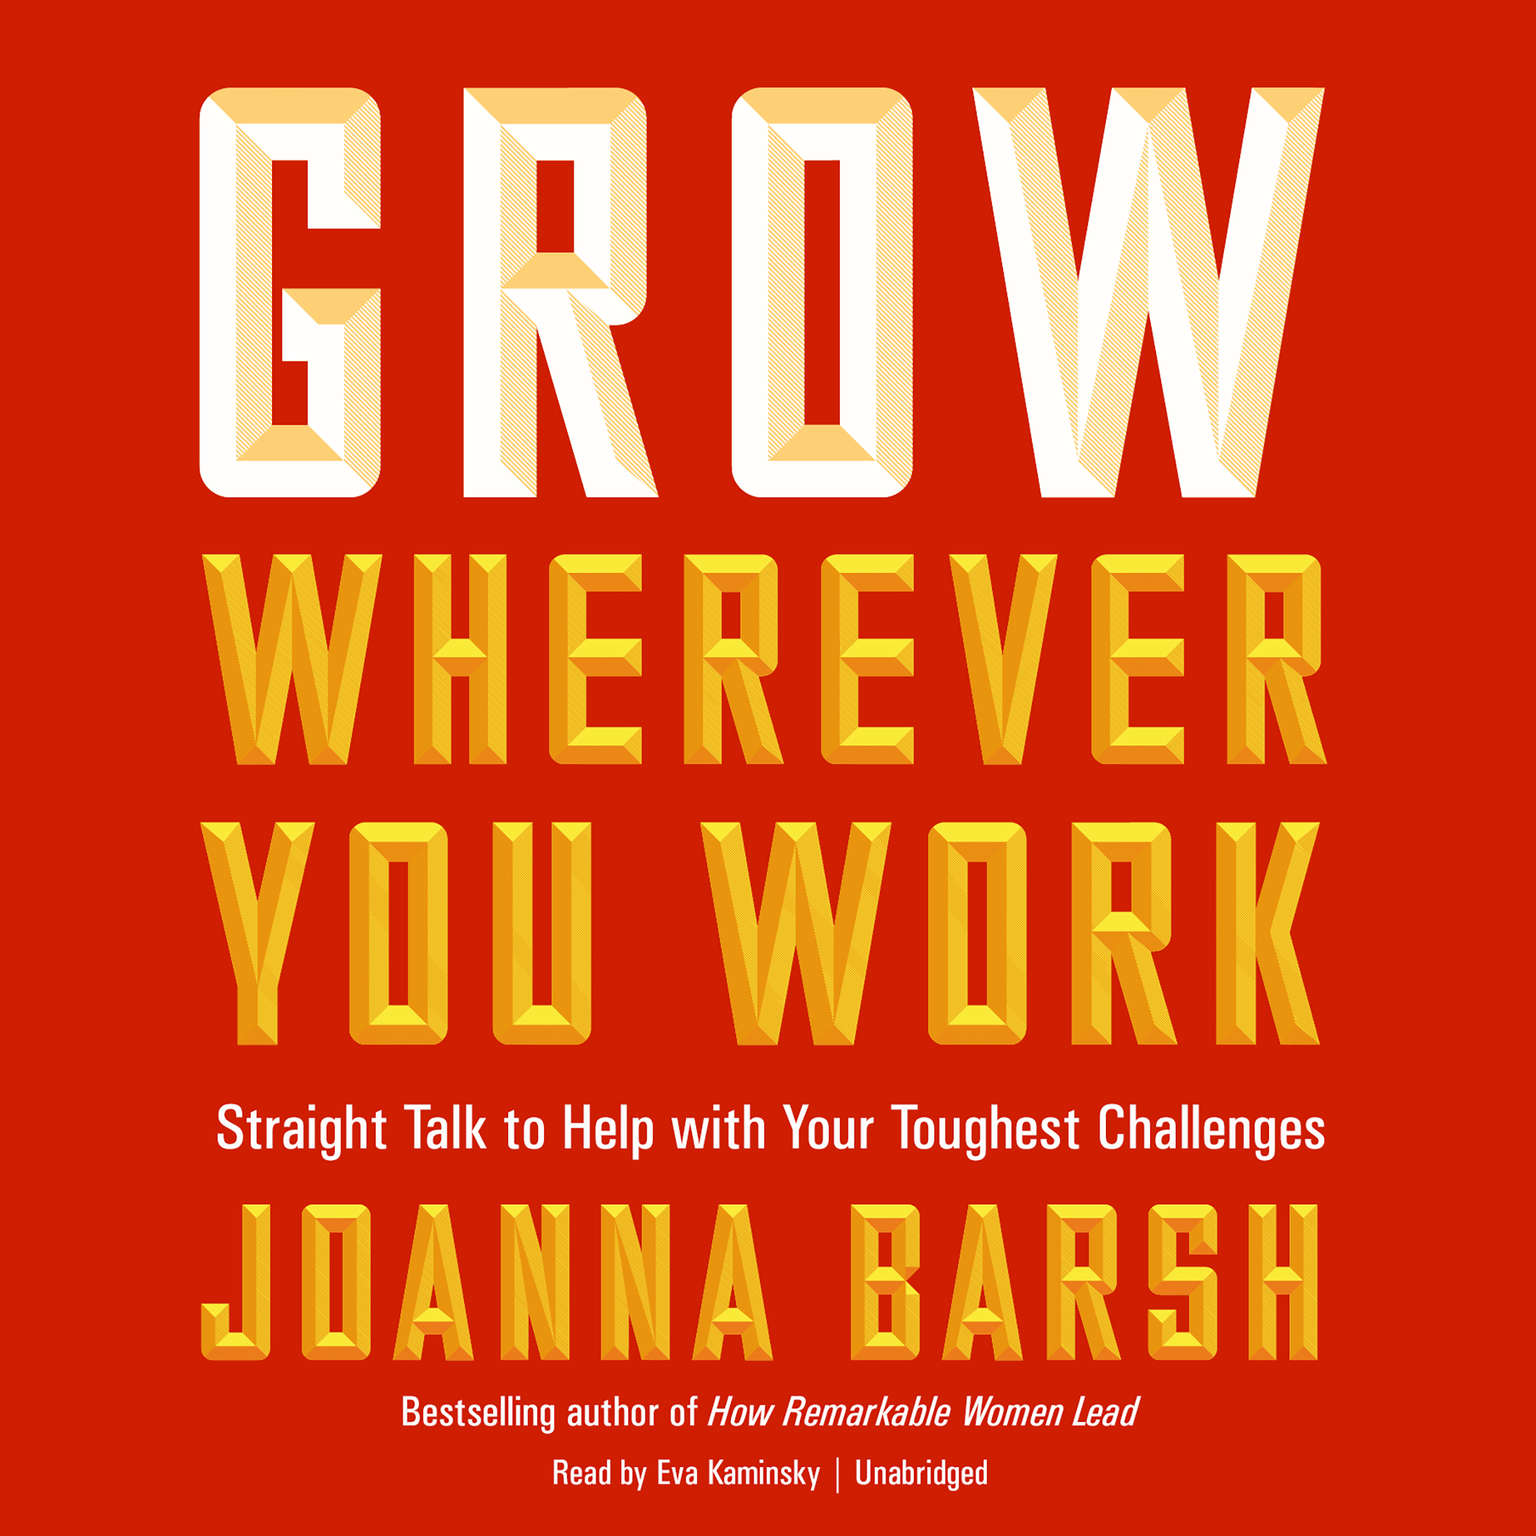 Grow Wherever You Work: Straight Talk to Help with Your Toughest Challenges Audiobook, by Joanna Barsh